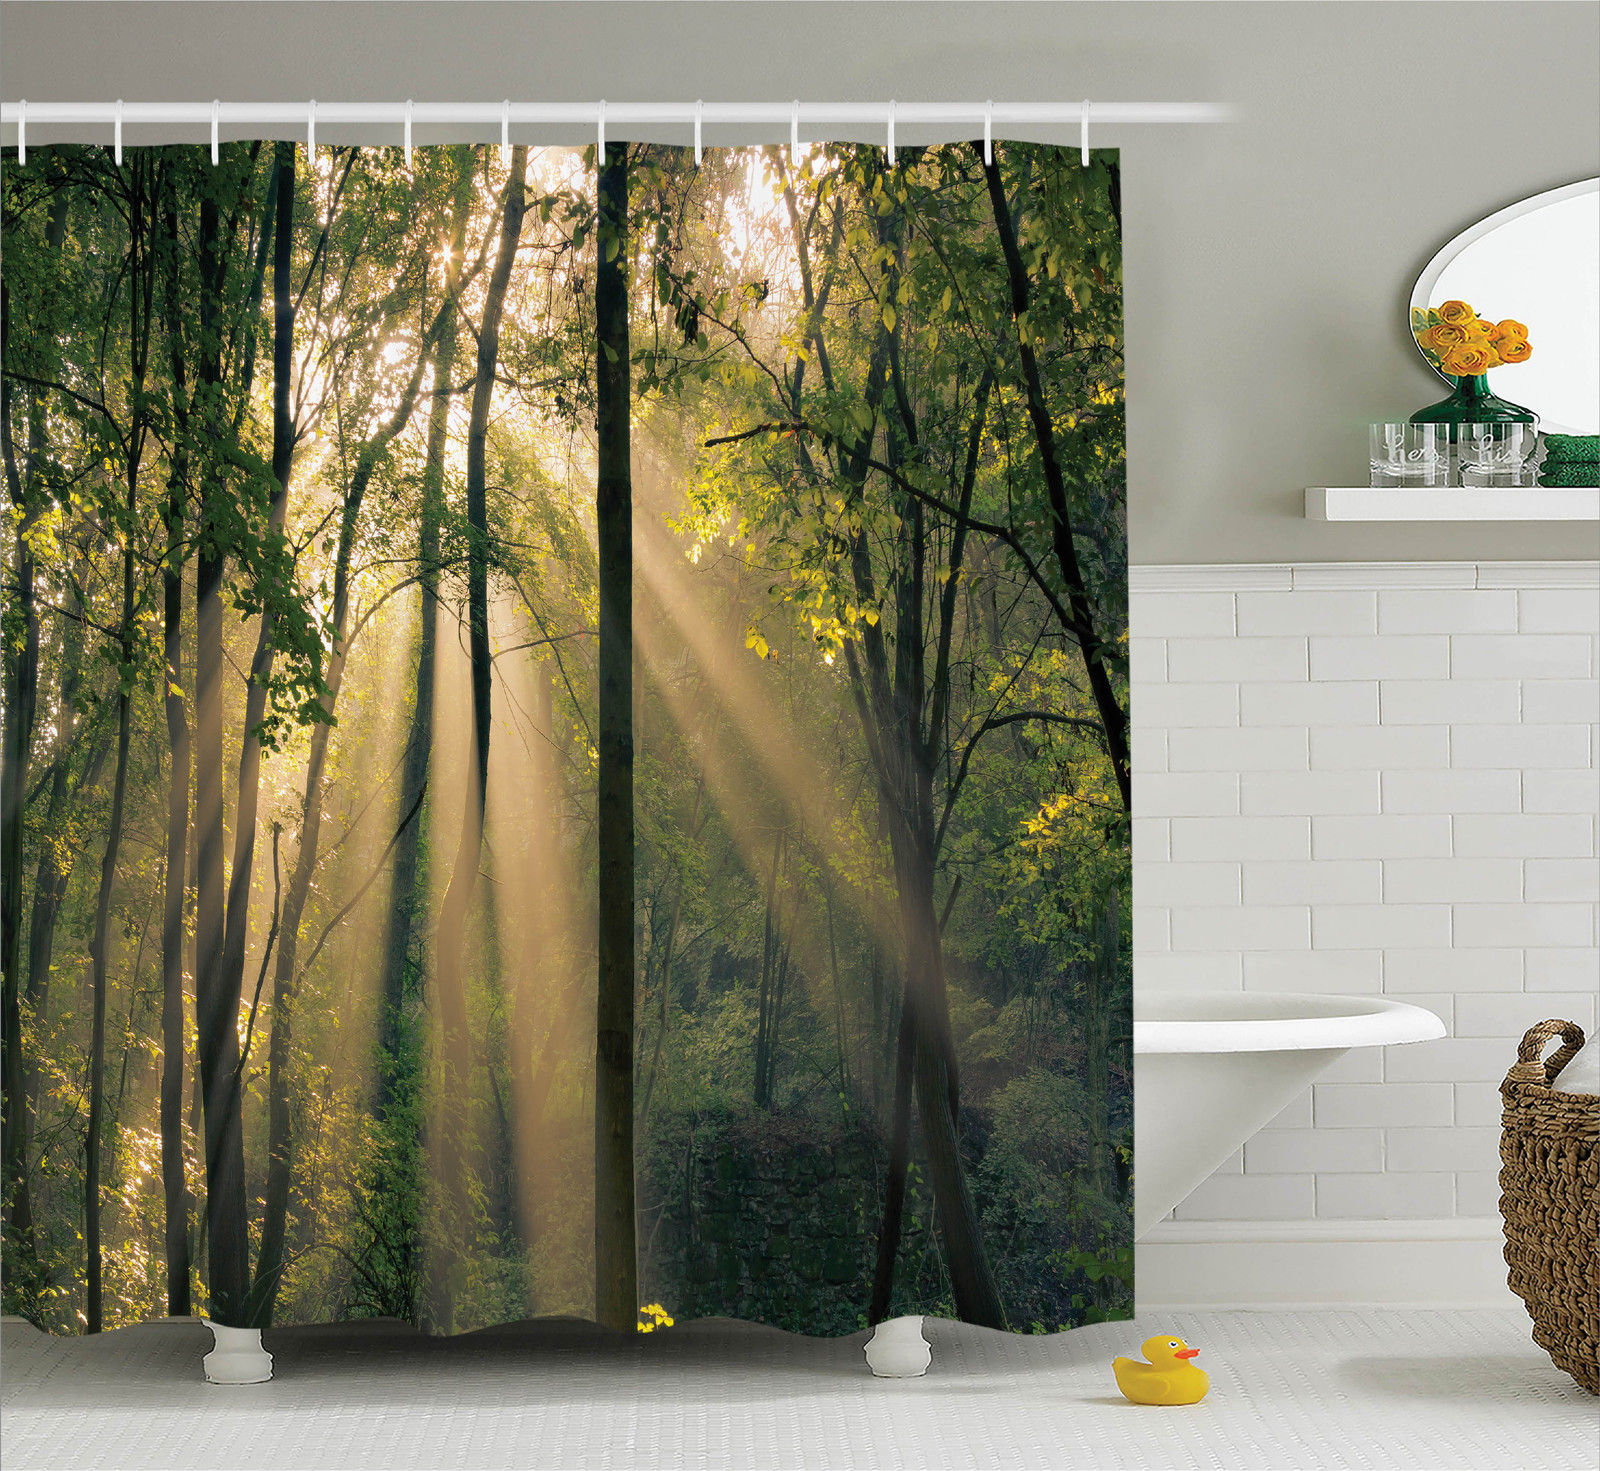 Farm House Decor Shower Curtain Set, Morning Sunrays Shining Through Trees Summertime Countryside Scenic View, Bathroom Accessories, 69W X 70L Inches, By Ambesonne